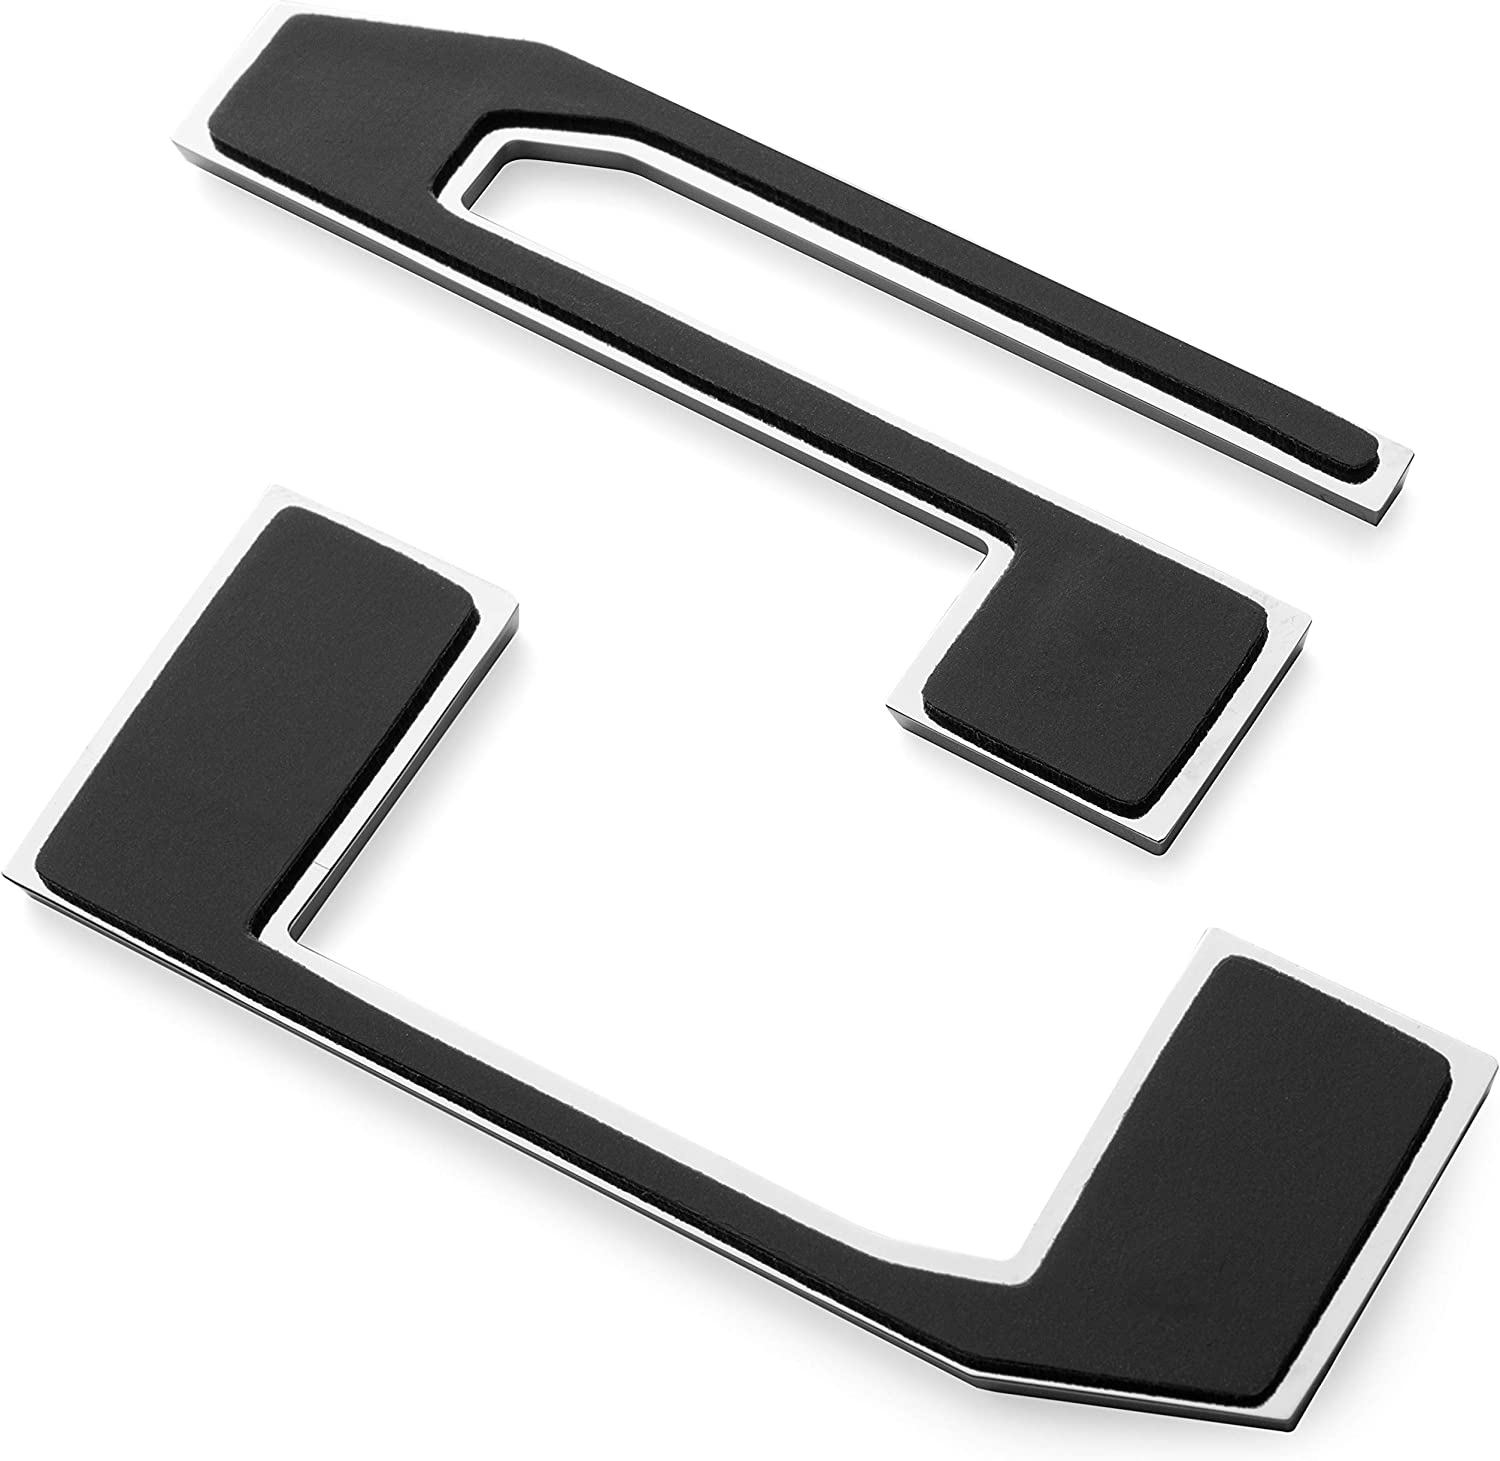 Gloss Black EyeCatcher Tailgate Insert Letters fits 2017-2019 Ford Super Duty